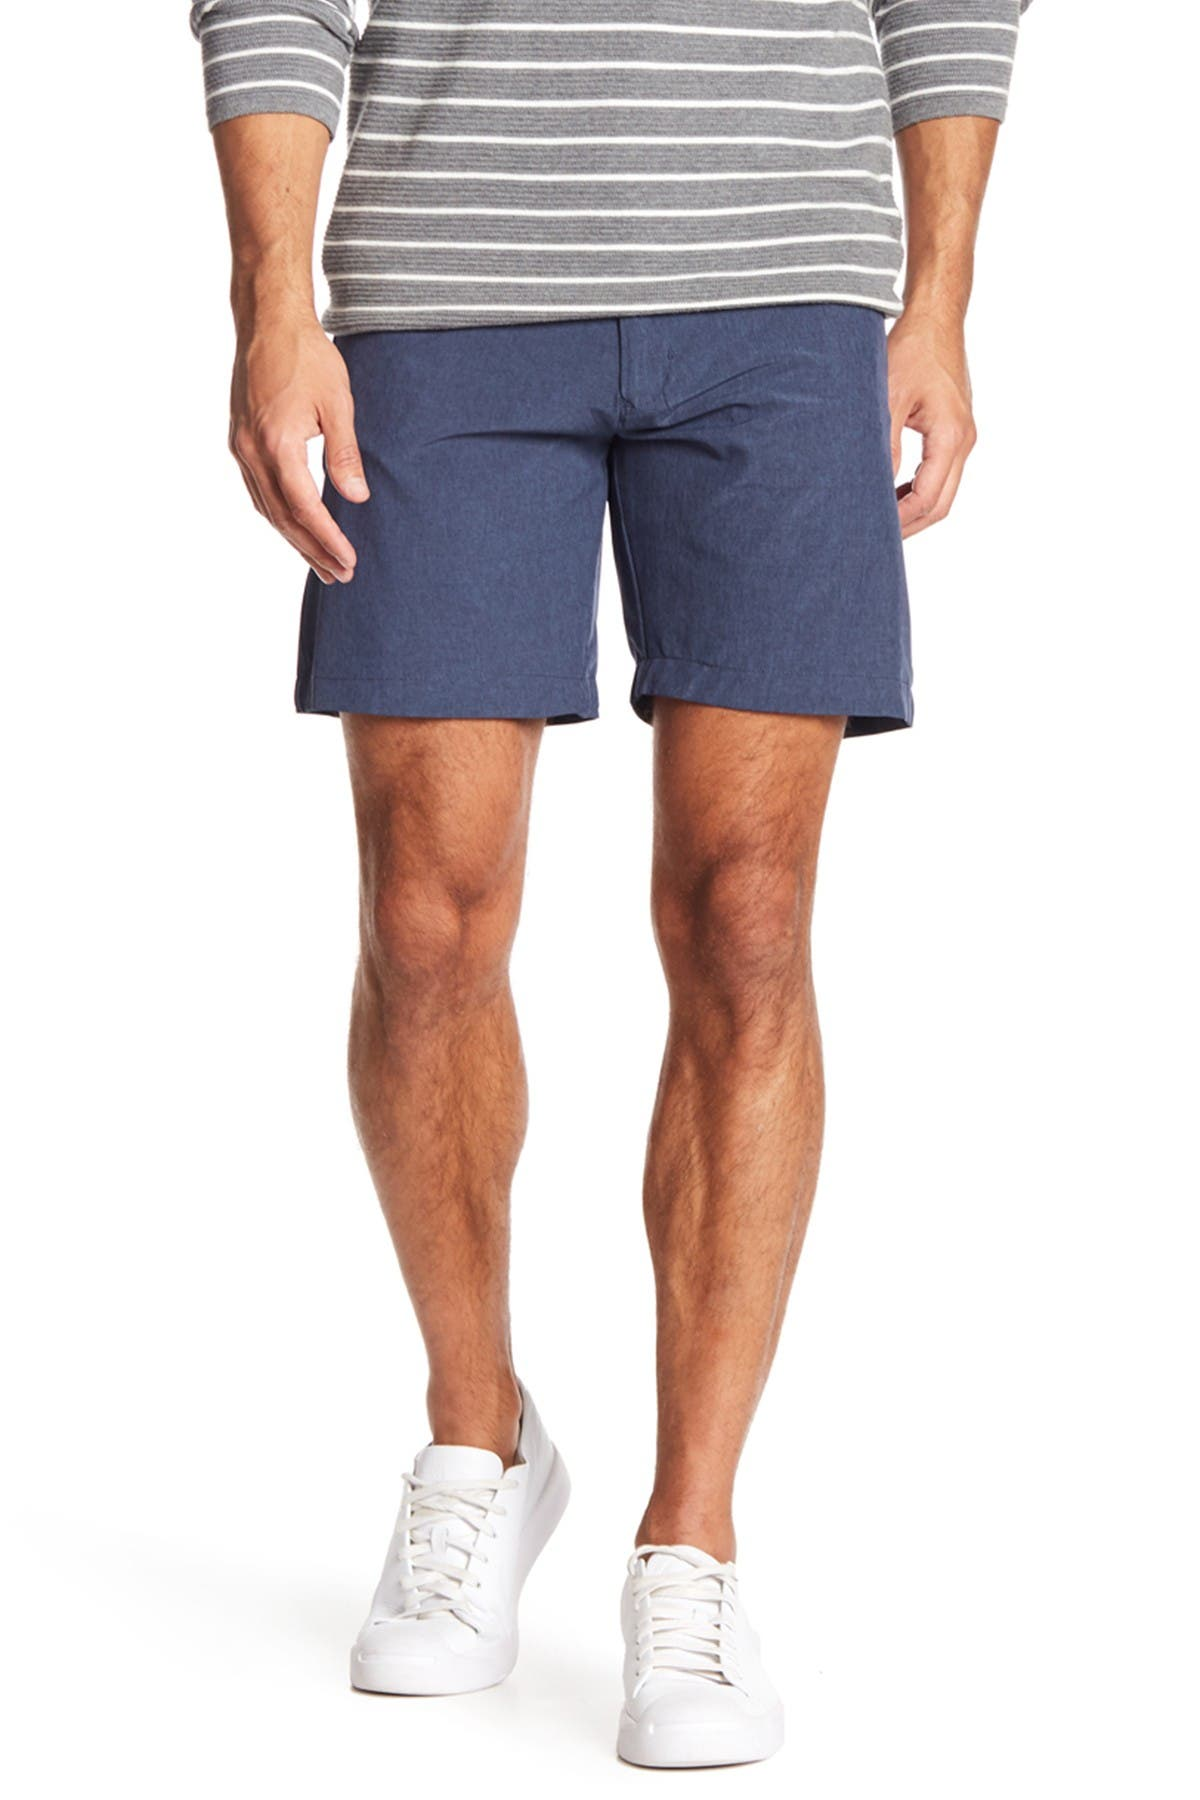 Image of TailorByrd Flex Shorts